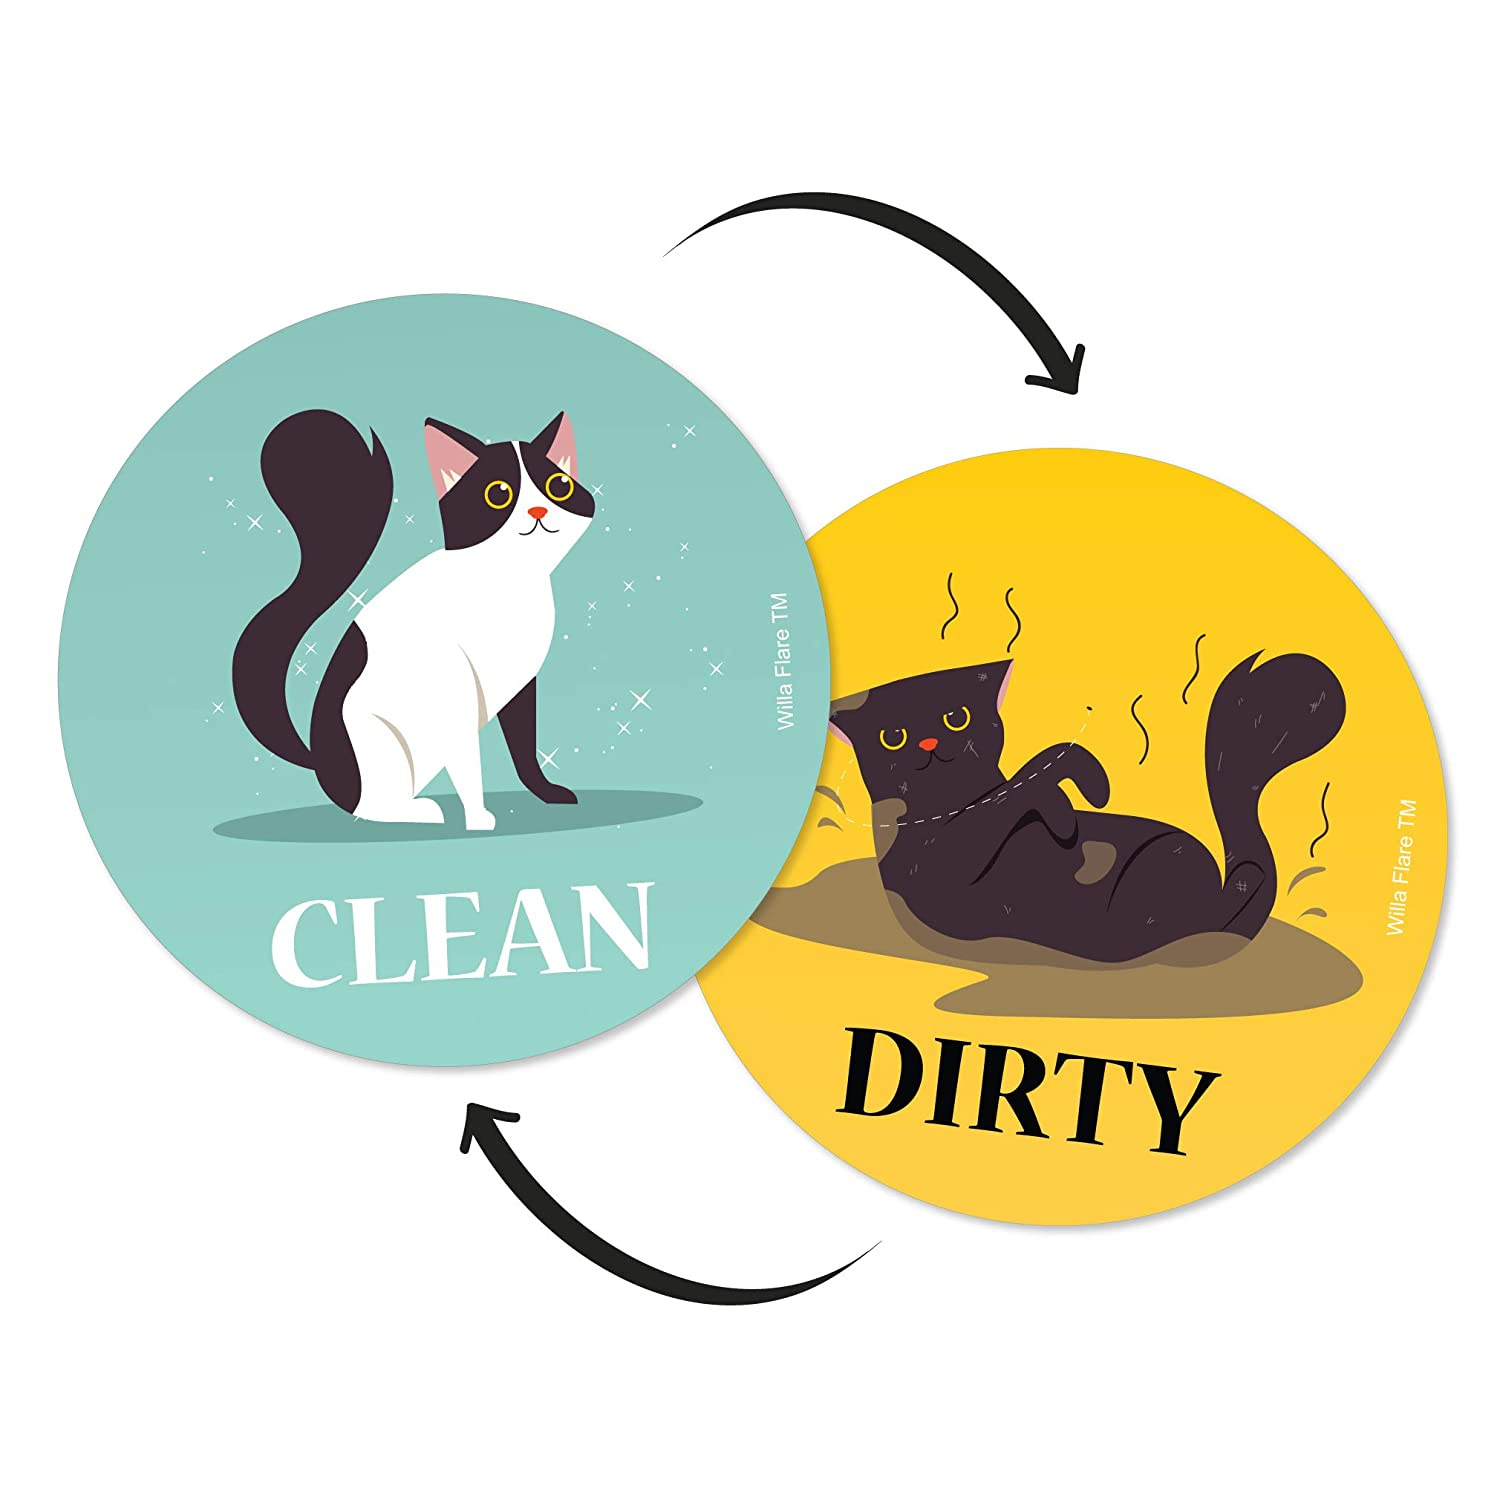 Dishwasher Magnet Clean Dirty Sign   Kitchen Label for Home Organization   Funny Clean Dirty Dishwasher Magnet Cat Accessories and Funny Cat Stuff Gifts   Double Sided   2 inch Circle (Cartoon Cat)